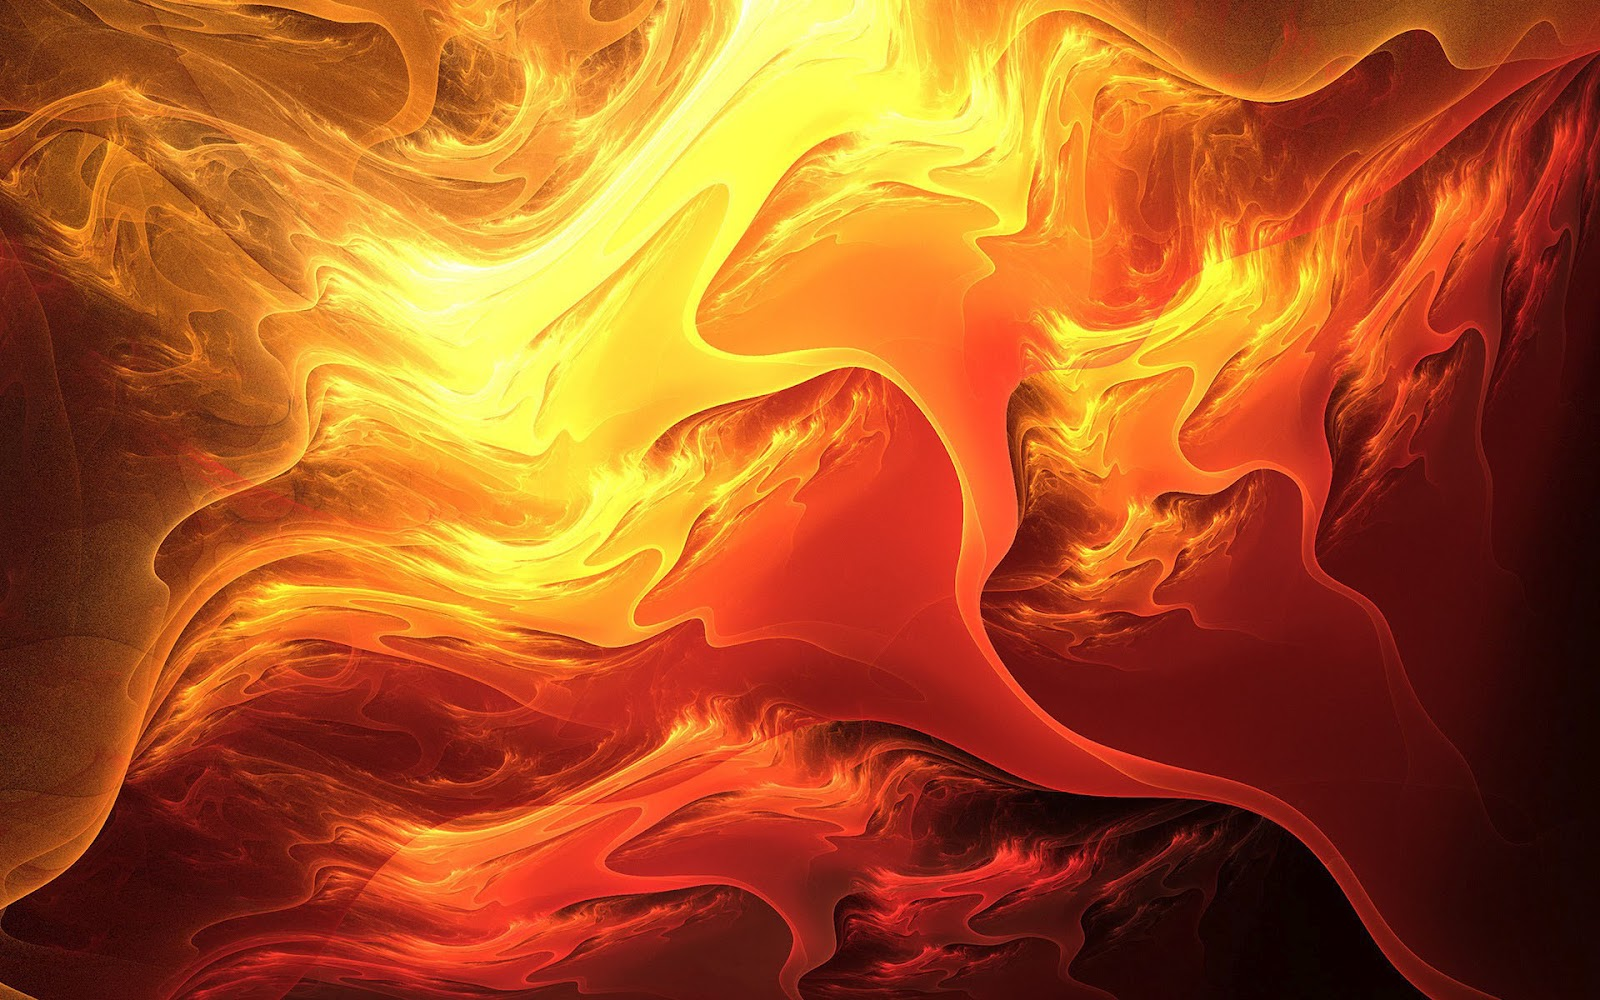 http://4.bp.blogspot.com/-39vxtn9kT7Q/UB5_7OktmSI/AAAAAAAAK38/CQ3hBUpu1EM/s1600/abstract-fire-color-3d.jpg